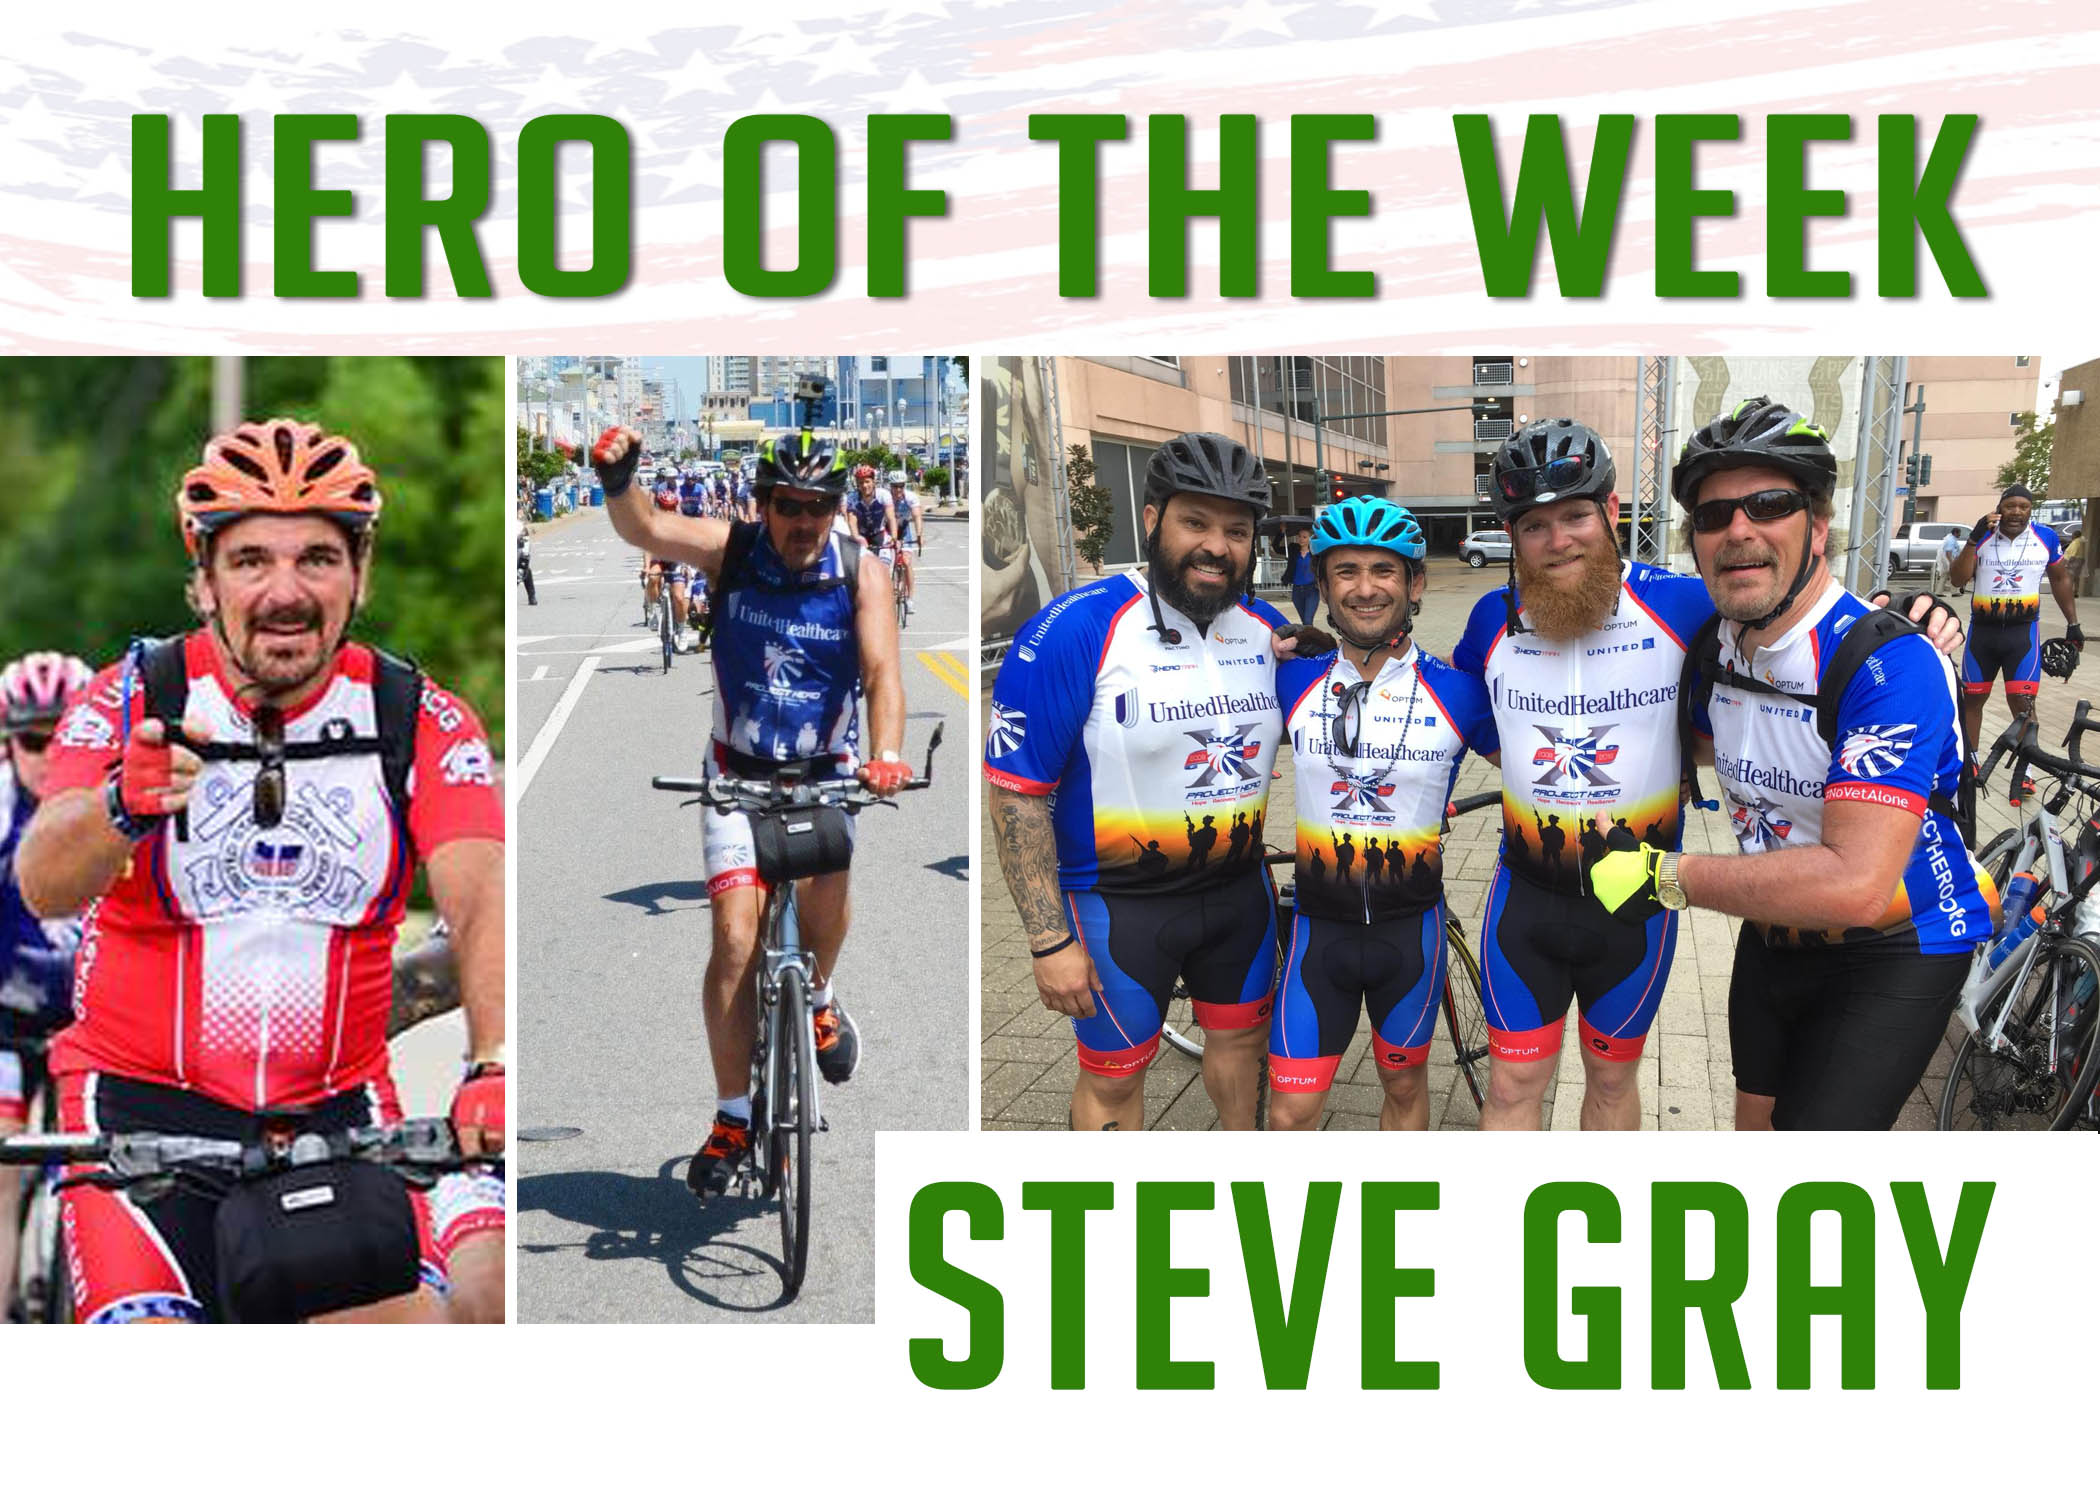 Hero of the Week: Steve Gray